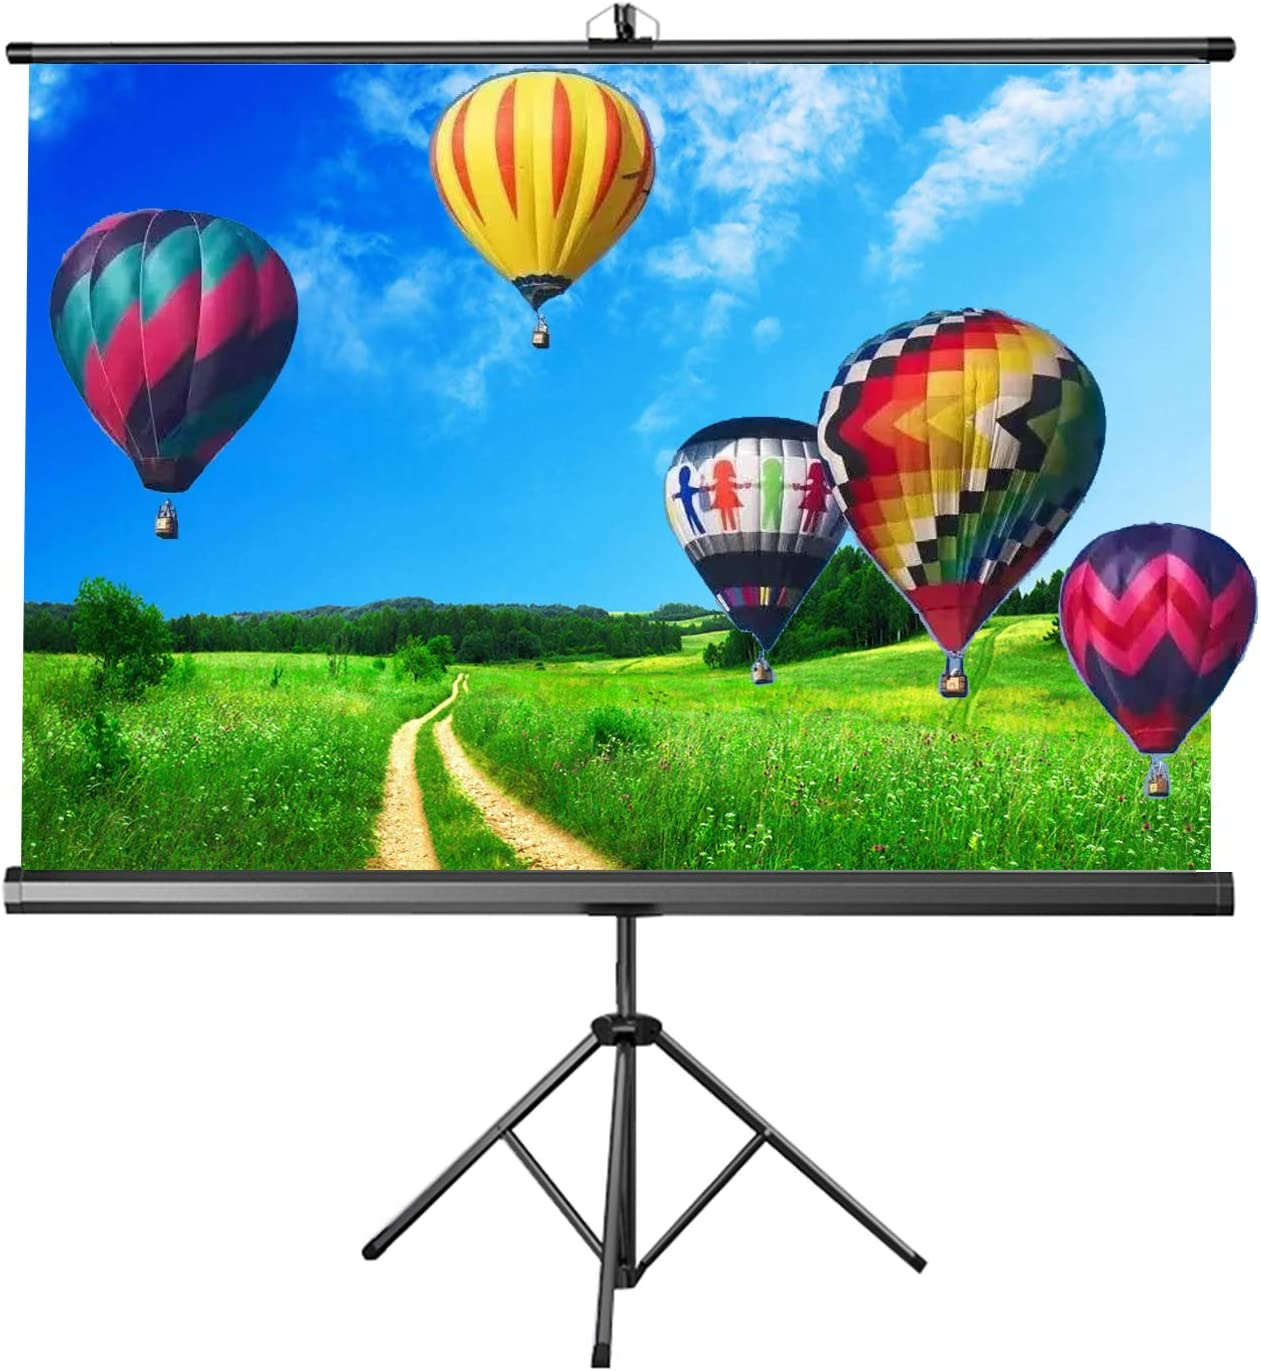 ALDS Tripod Stand Projection Screen, 160°Viewing Cone Projector Screen Freestanding Movies Screen for Small Rooms Travel Meeting (4:3/16:10/16:9 60 Inch)